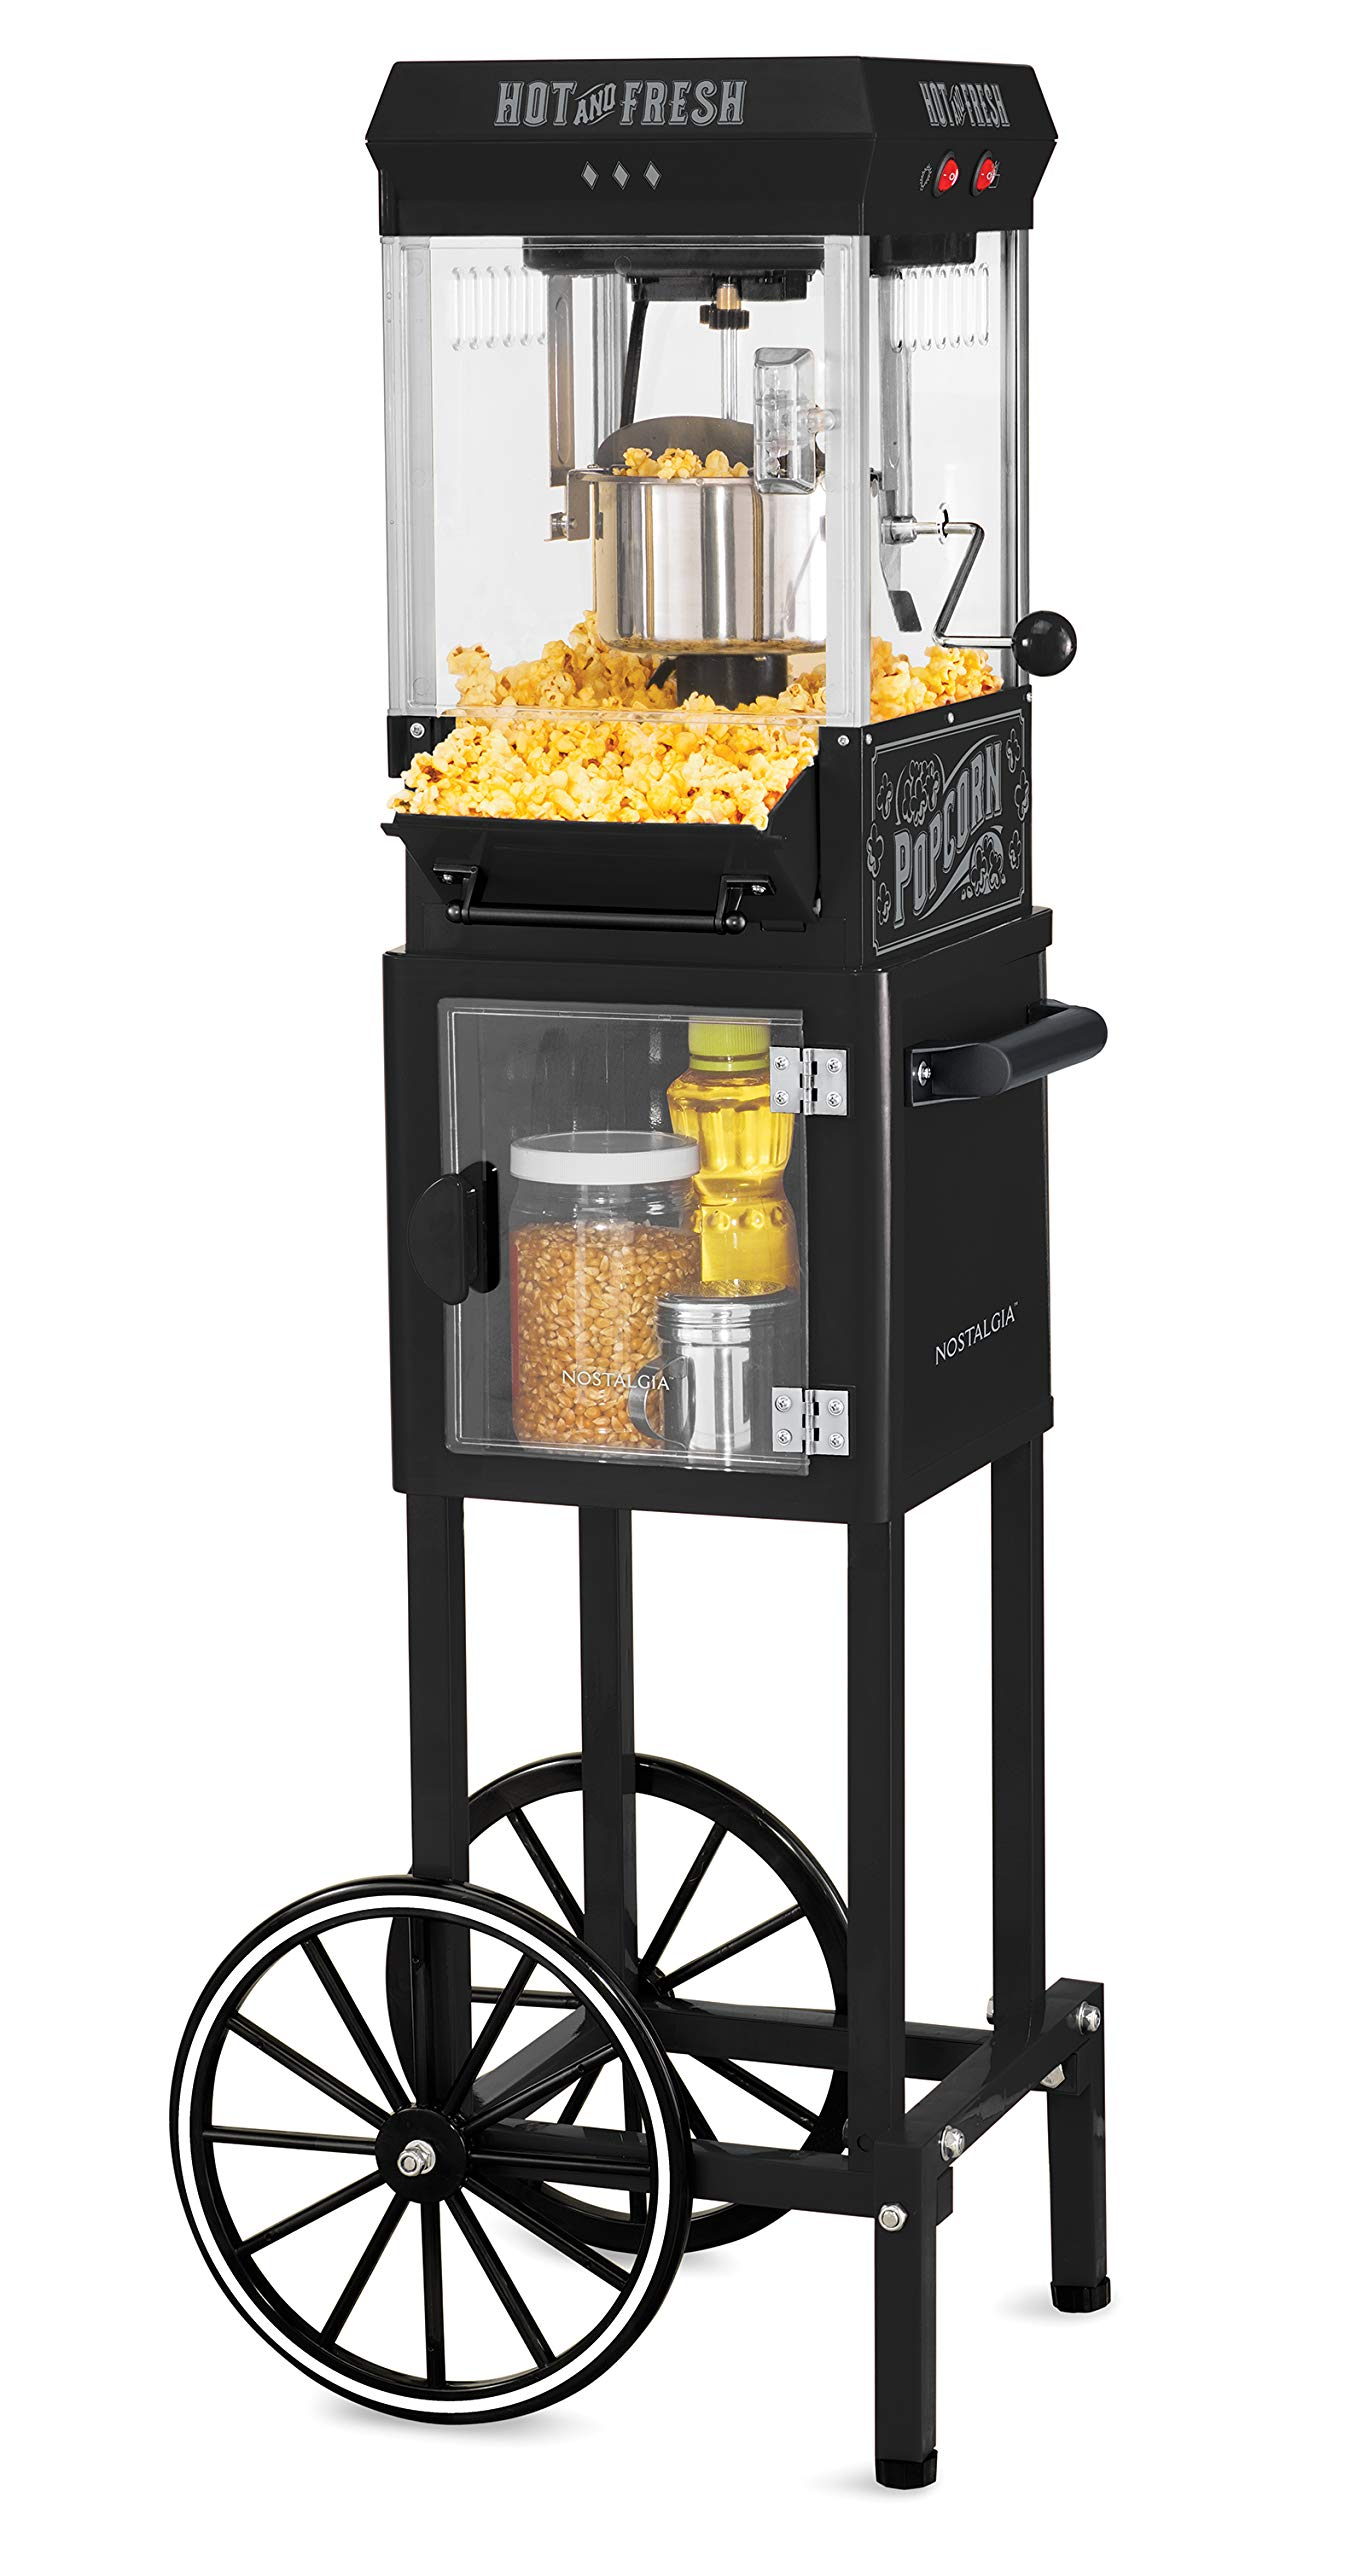 Nostalgia KPM220CTBK 2.5 oz Professional Popcorn & Concession Cart with 5 quart Bowl, 45'' Tall, Makes 10 Cups, with Kernel & Oil Measuring Spoons & Scoop, 11'' Wheels for Easy Mobility by NOSTALGIA